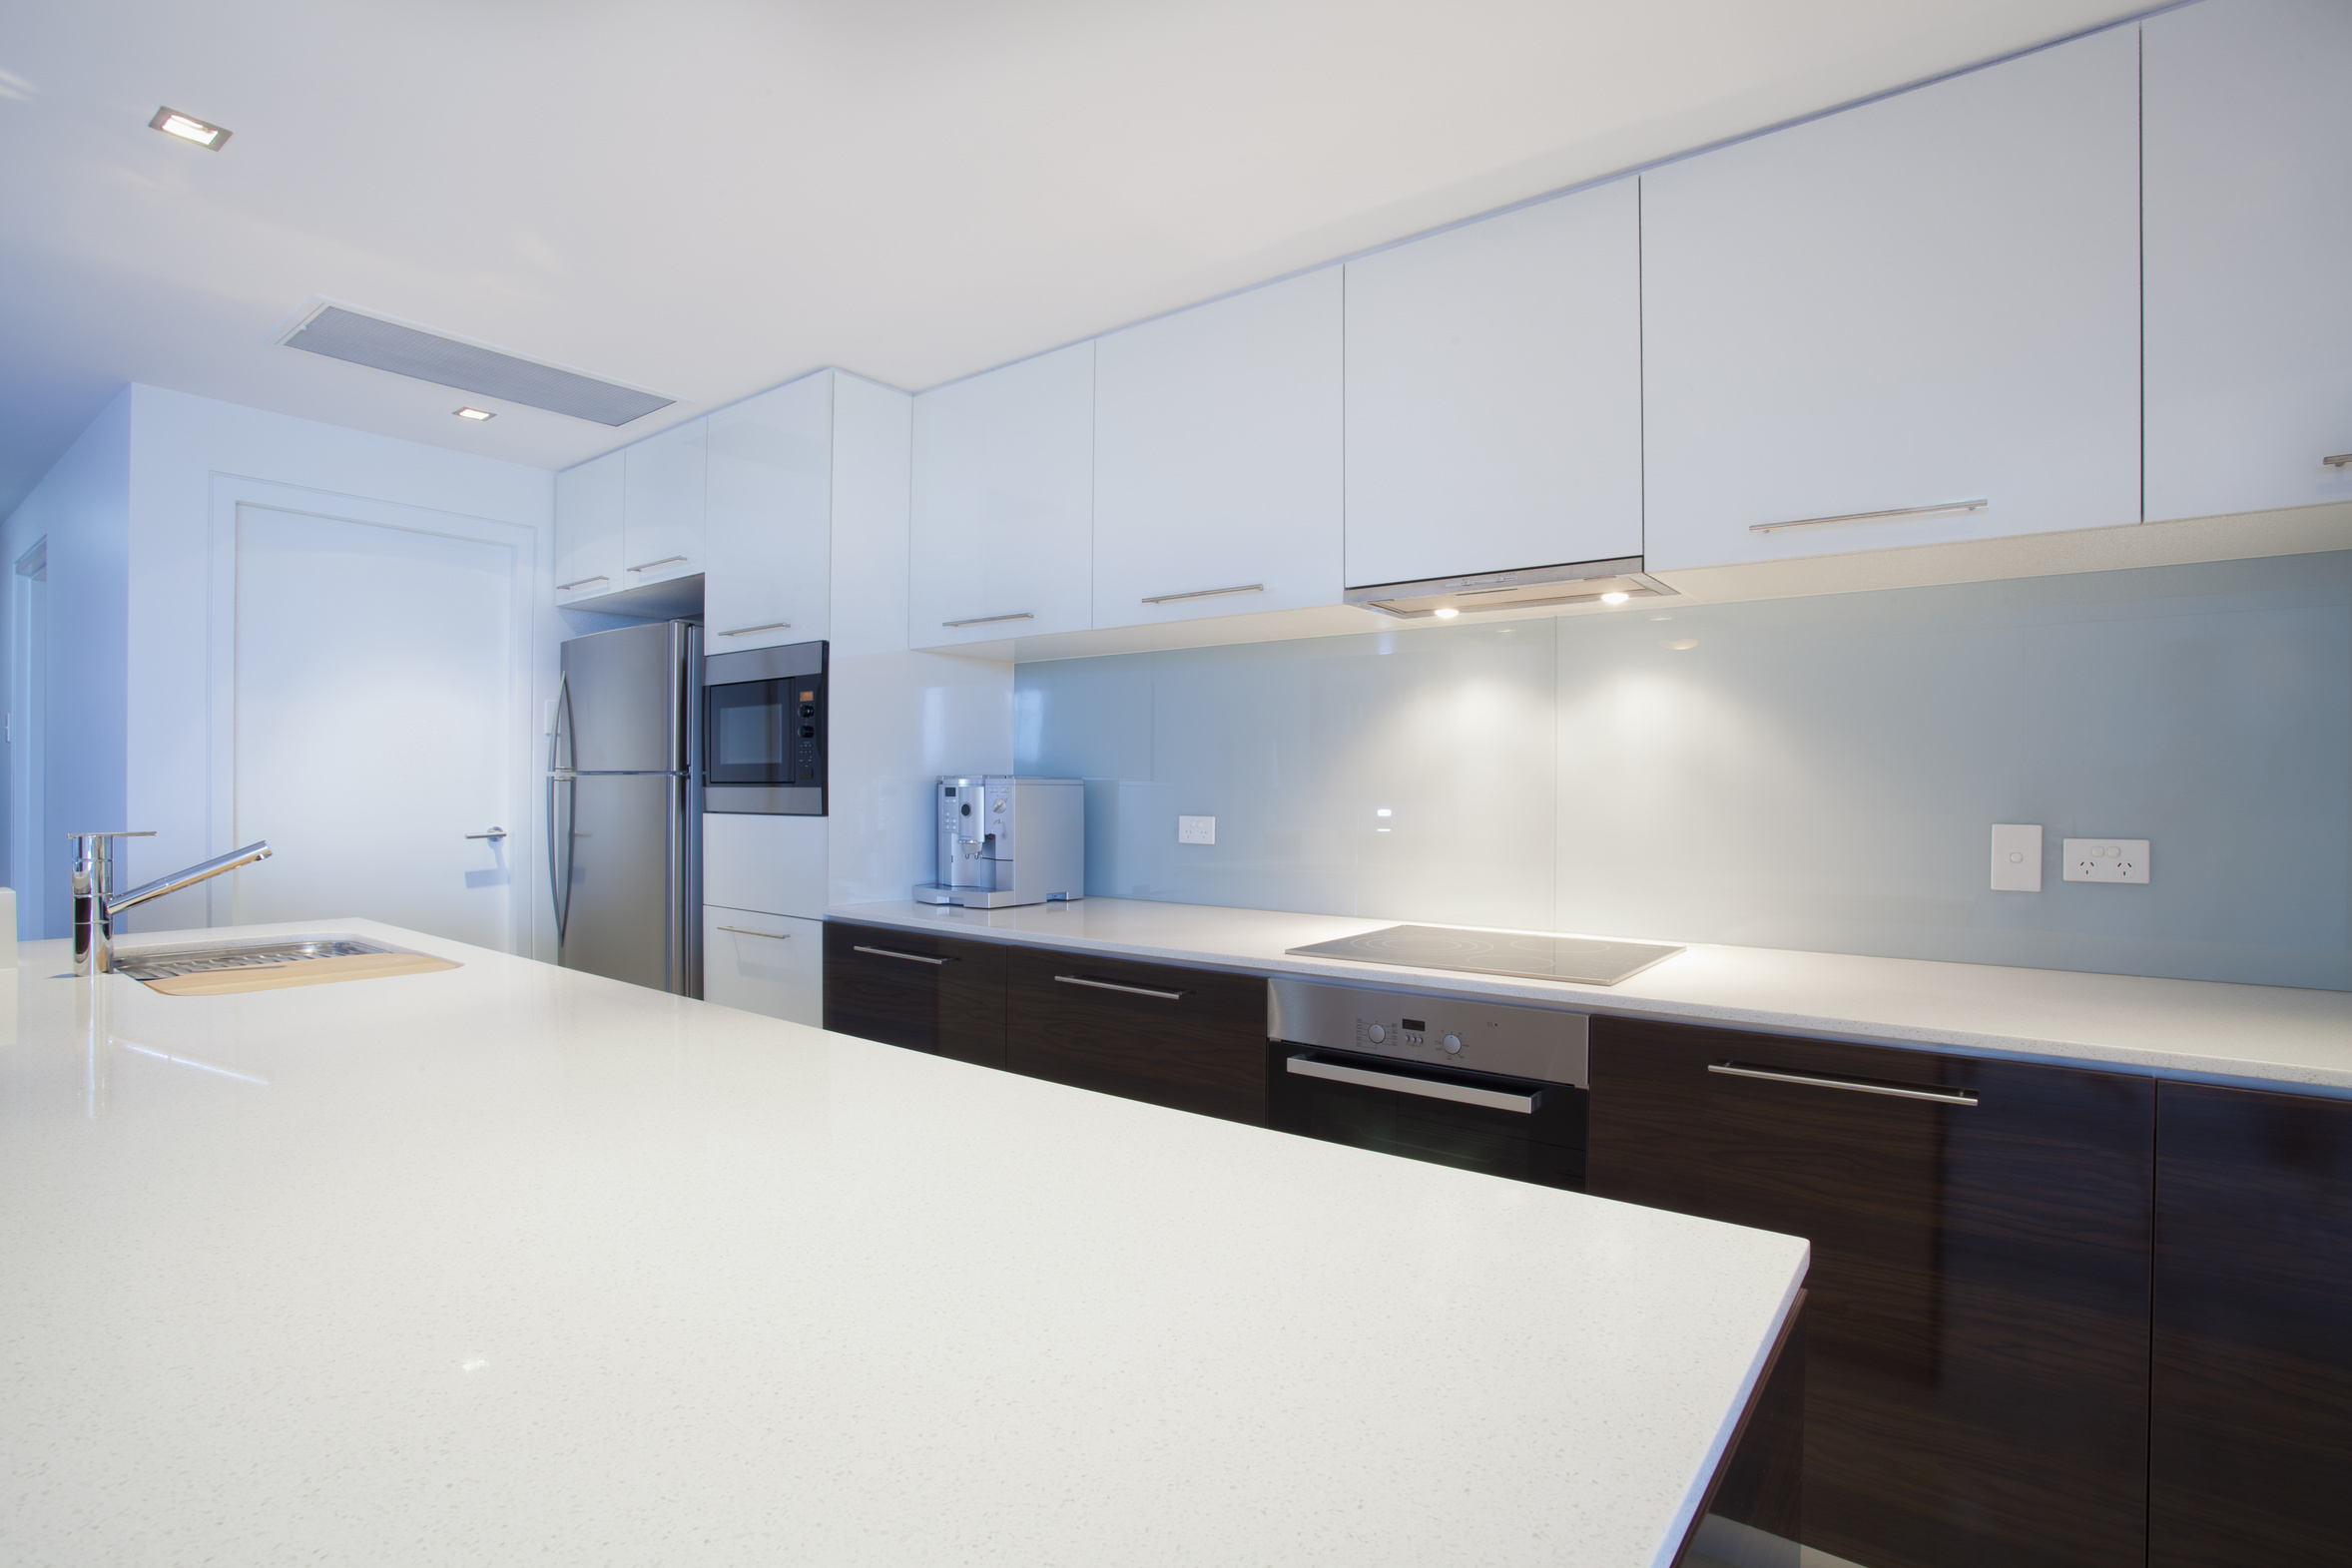 our residential cleaning services range from move in home cleaning post construction cleaning seasonal deep cleaning frequent home cleaning carpet detox